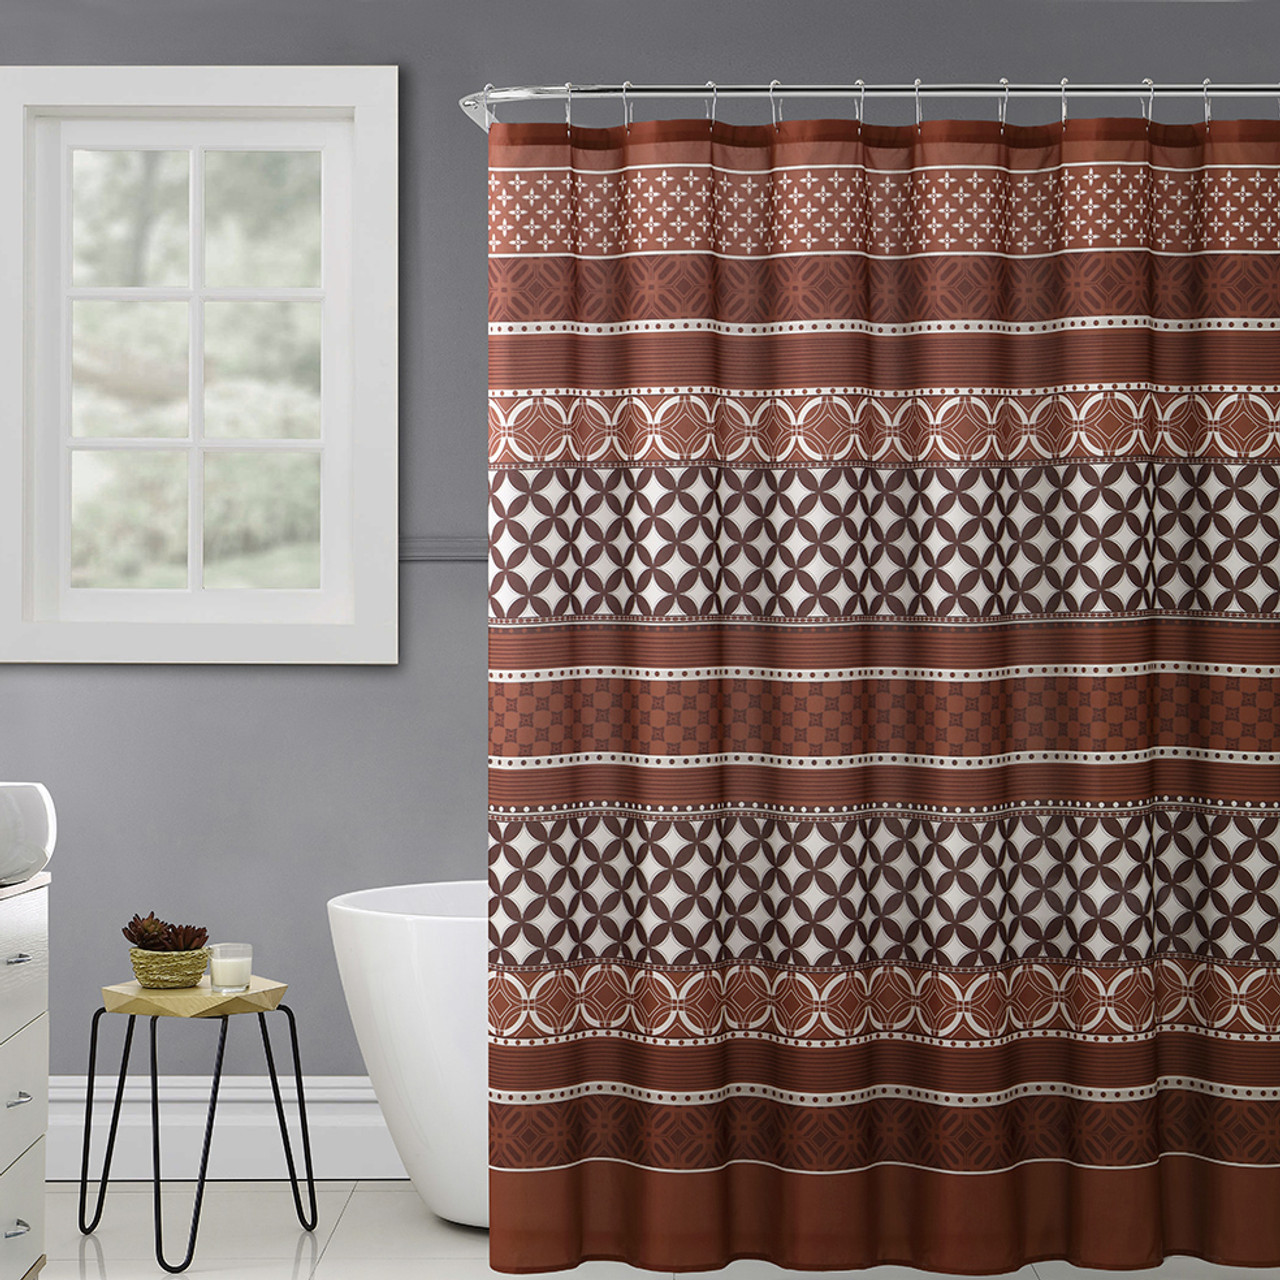 https myinfinitystore com rust chocolate brown and beige fabric shower curtain with printed trendy eclectic geometrical design 72 x 72